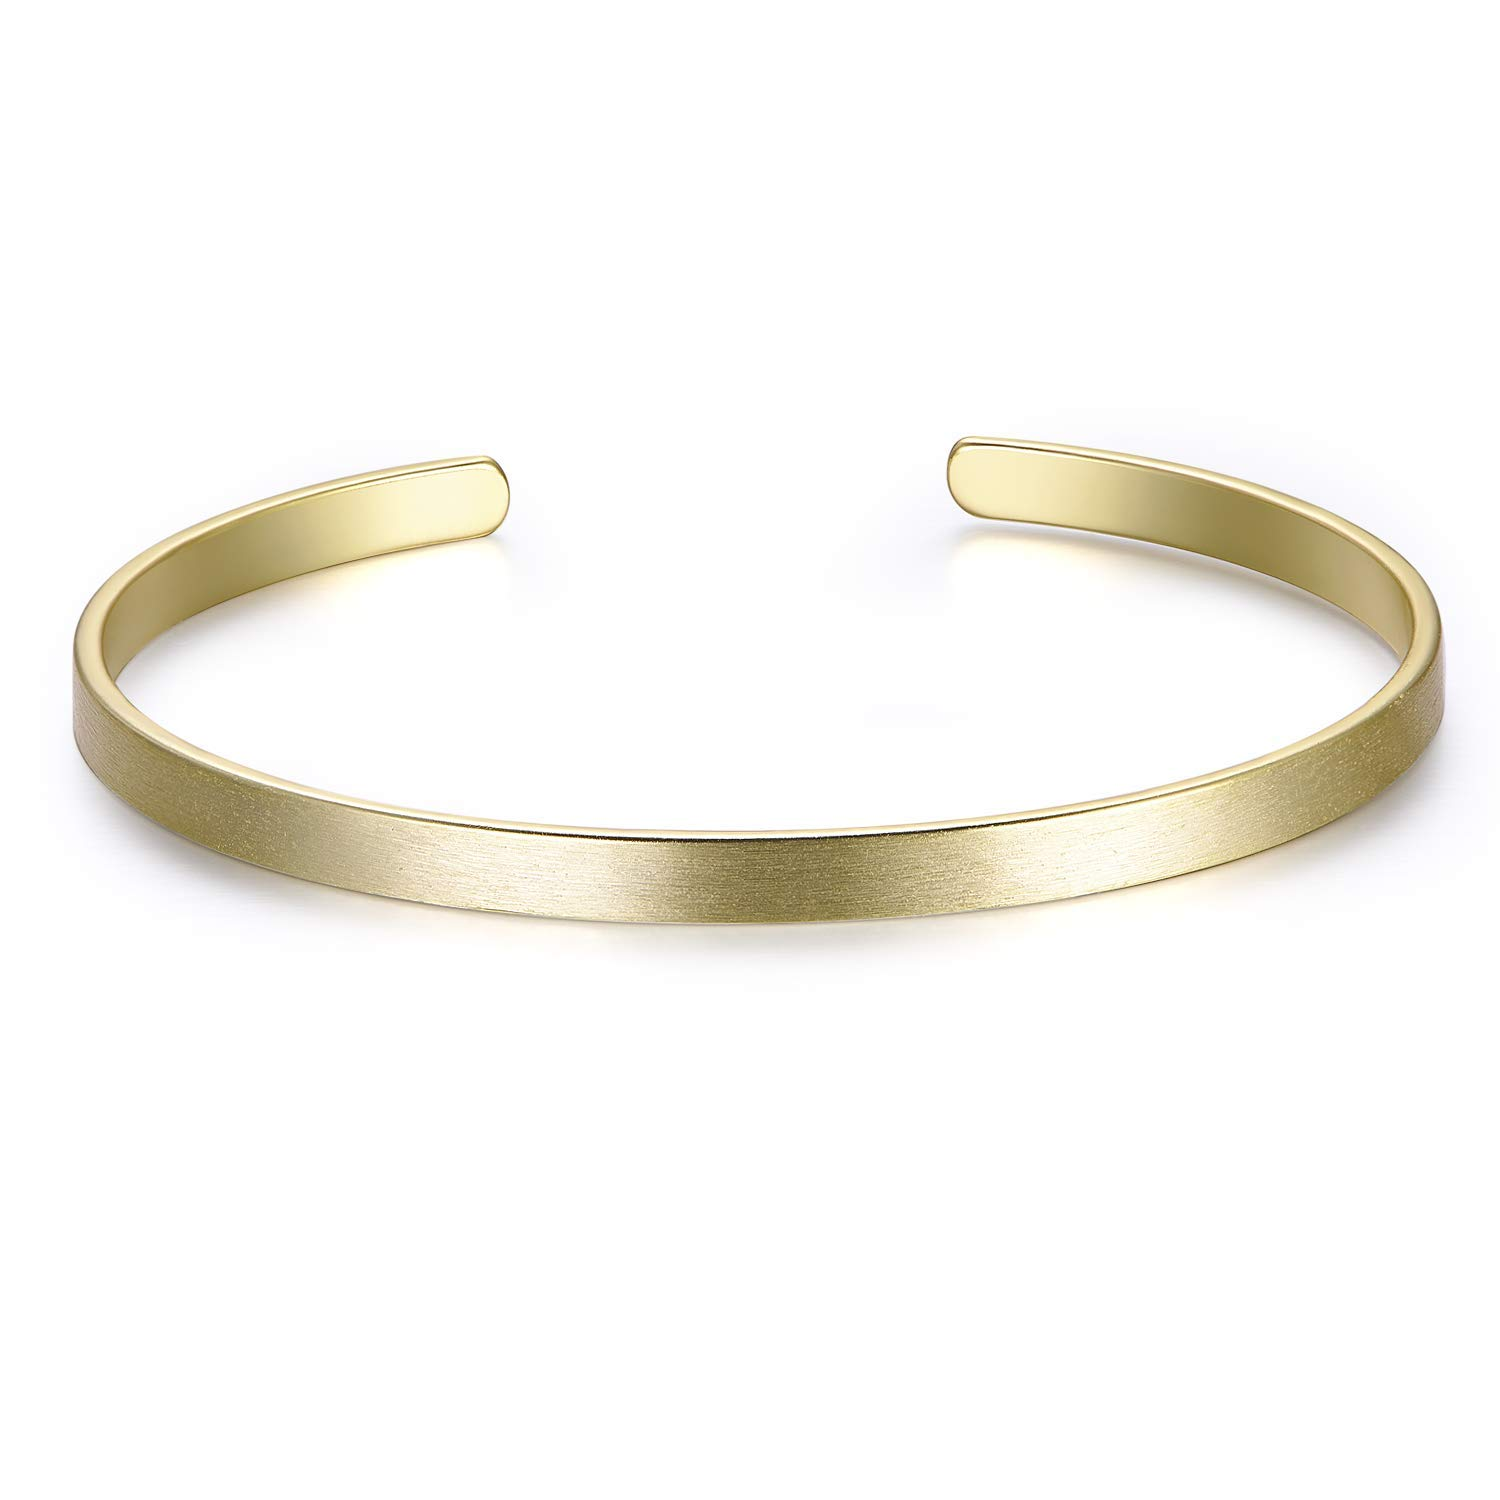 Ofashion Finished Brass Blank Charm Cuff Bracelet